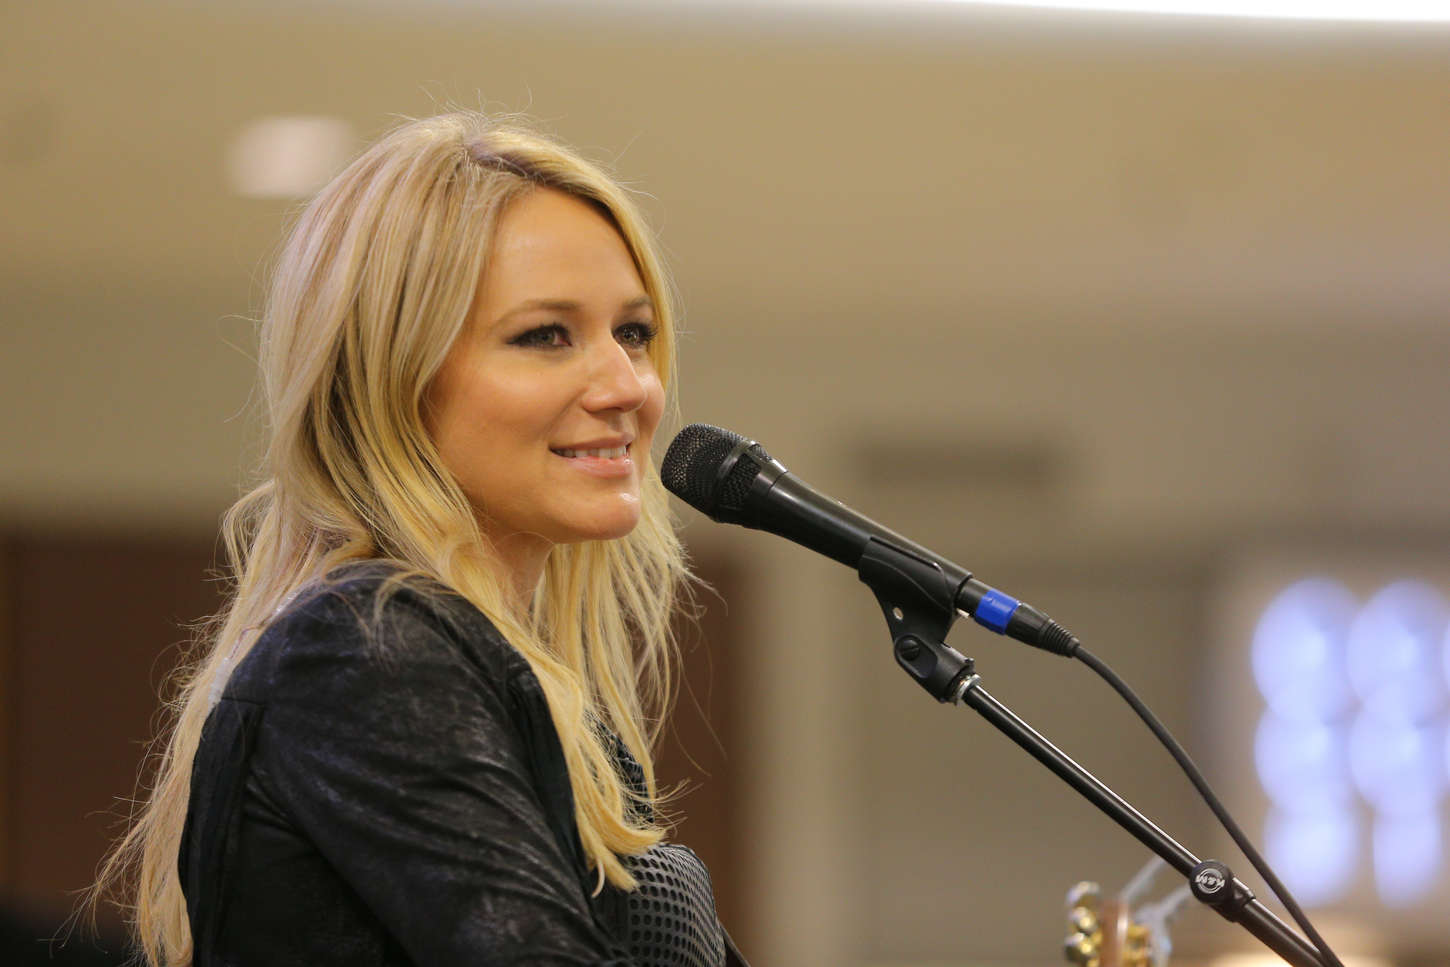 Jewel Kilcher Performs at Mall of America in Bloomington